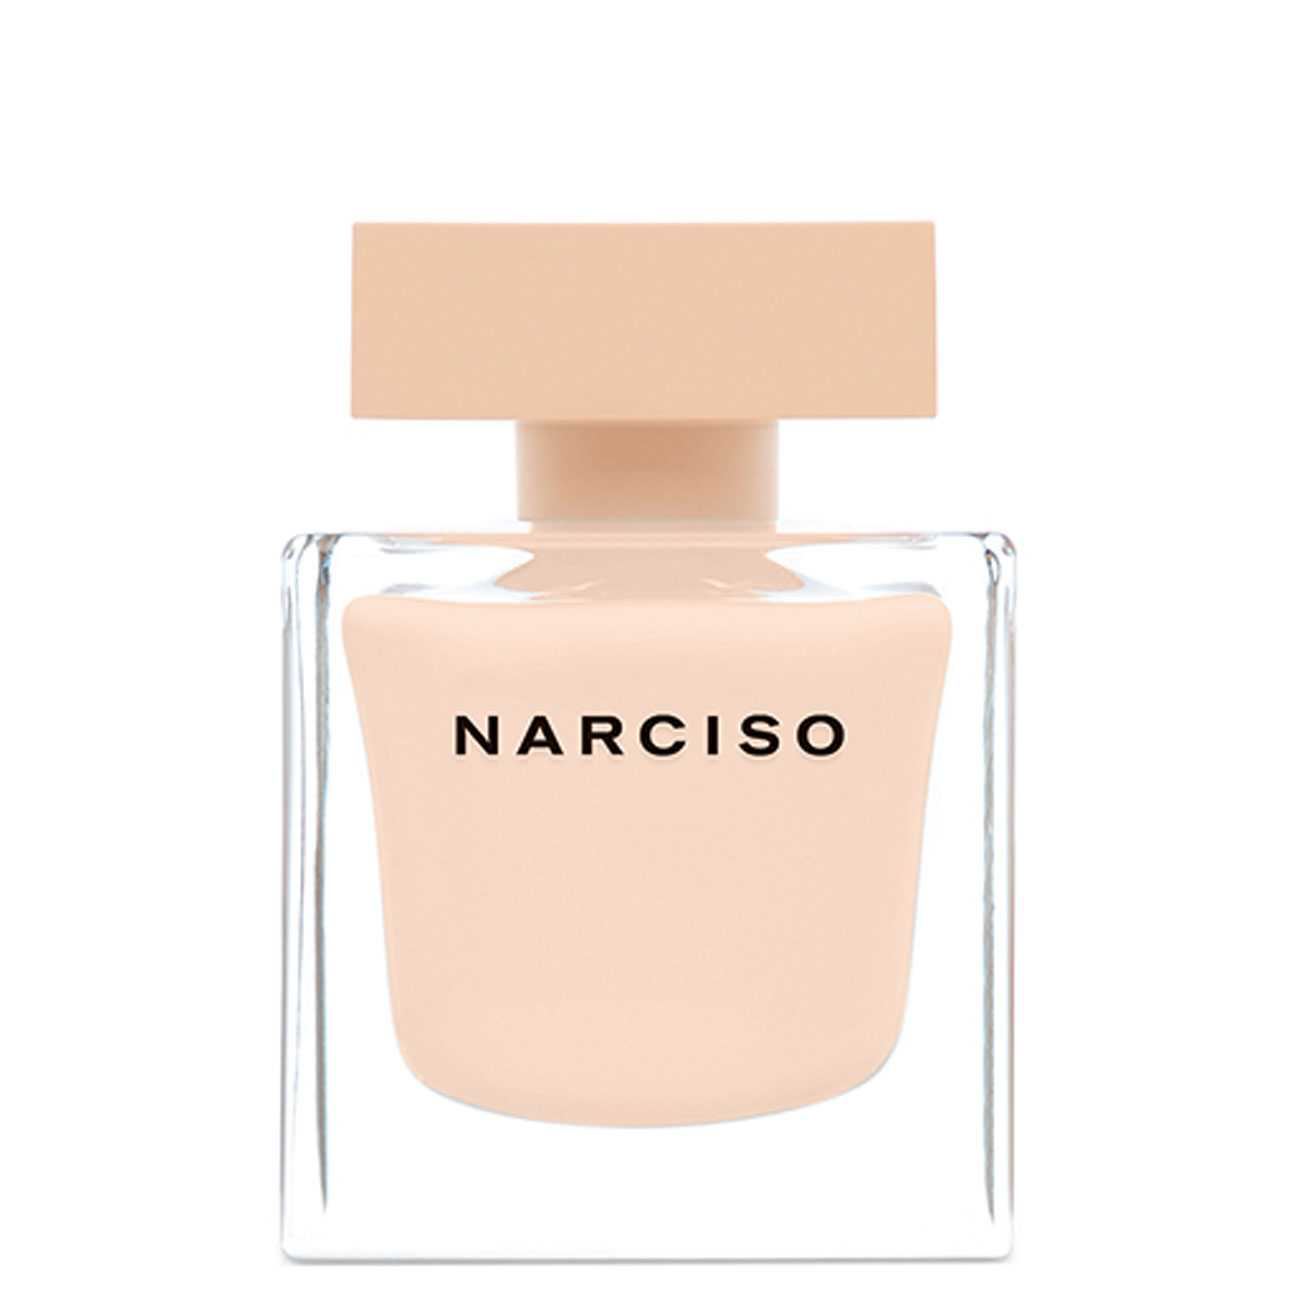 NARCISO POUDRÉE 90ml